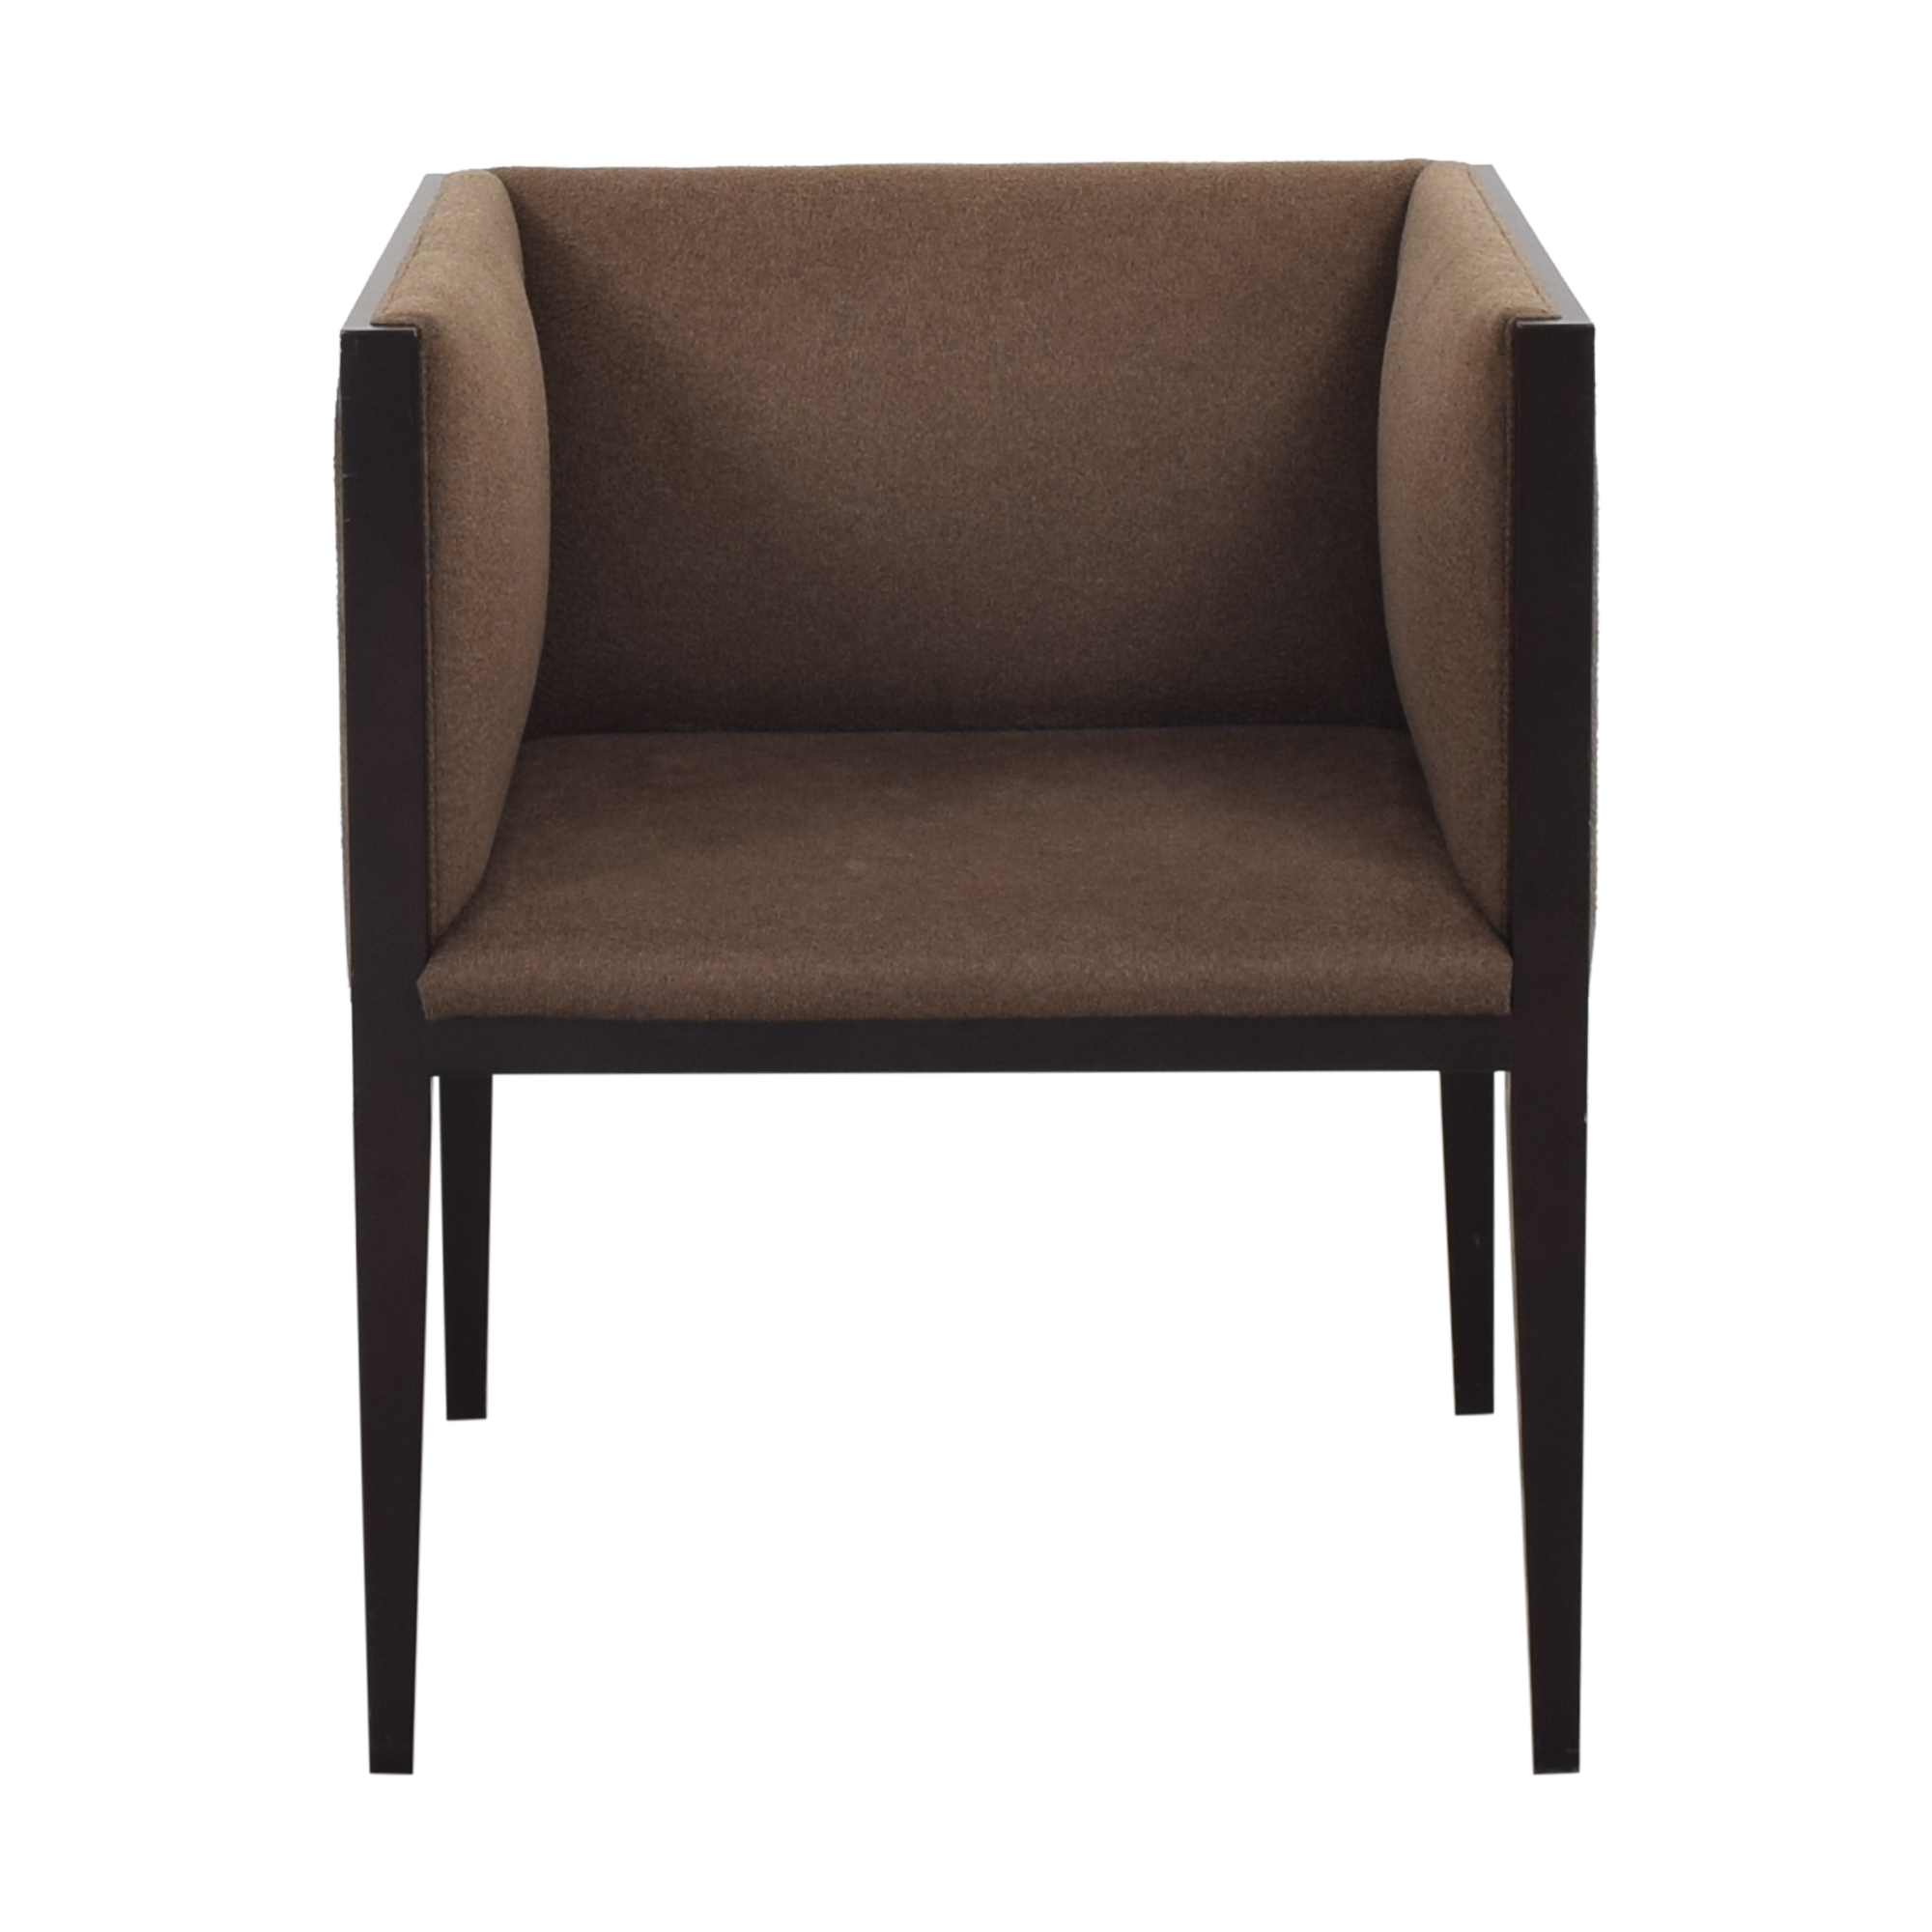 Hudson Furniture & Bedding Hudson Furniture & Bedding Tuxedo Accent Chair nyc